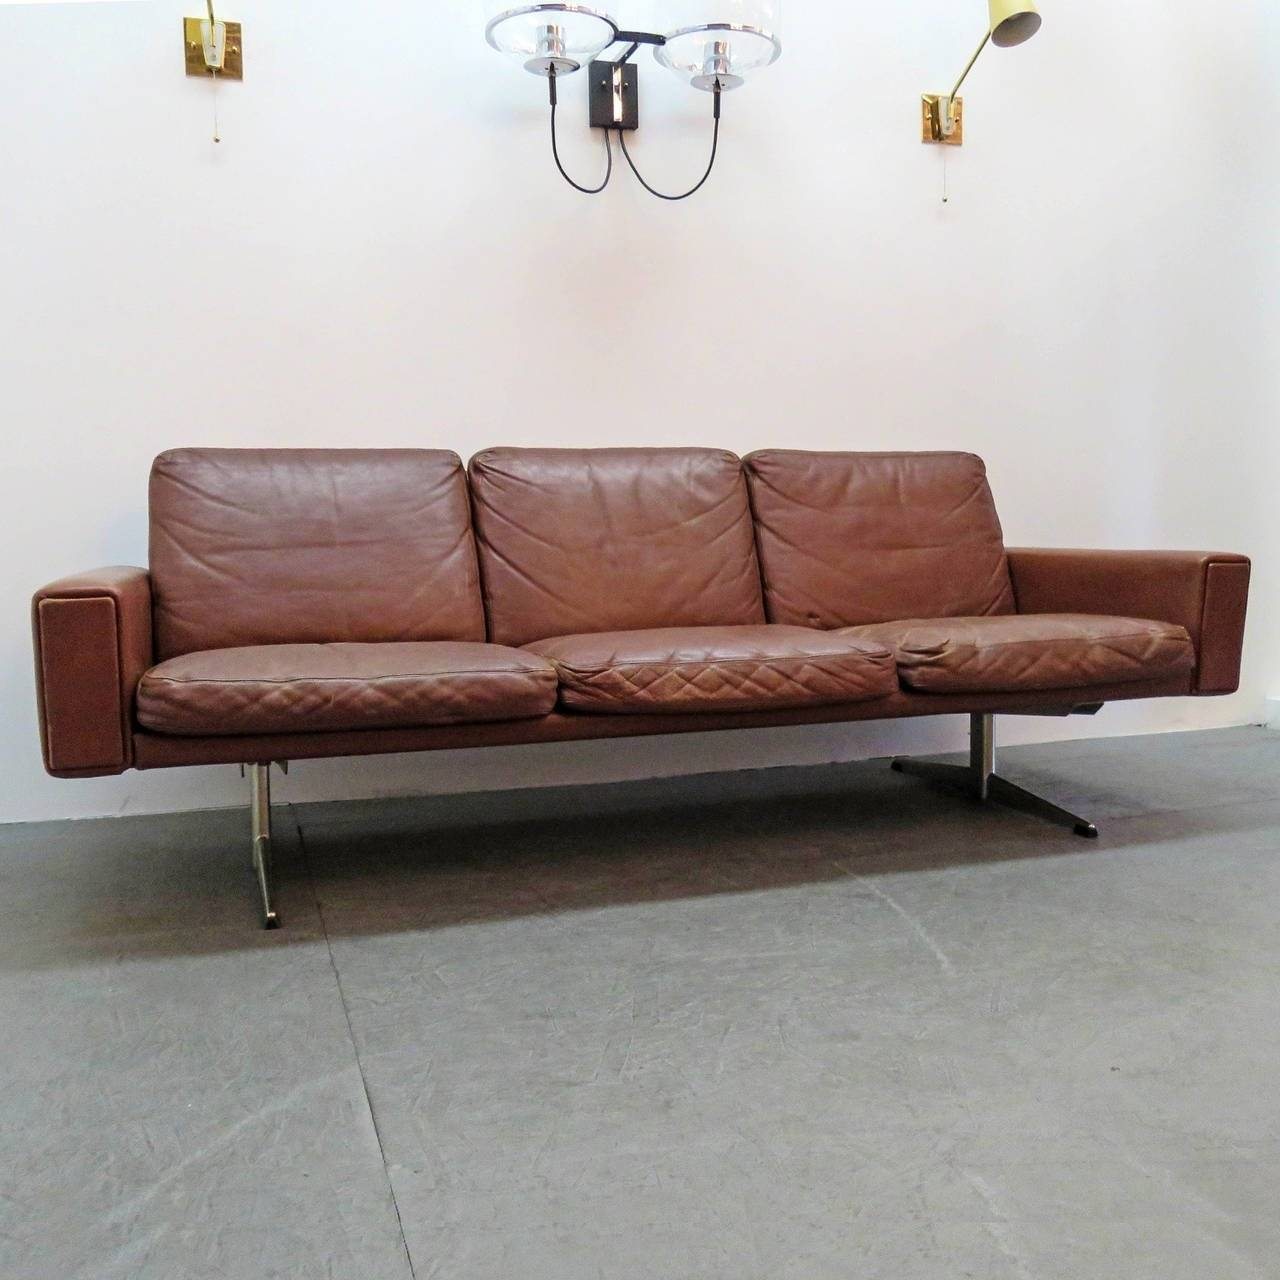 Danish Leather Sofa, 1960 For Sale At 1Stdibs regarding Danish Leather Sofas (Image 7 of 15)